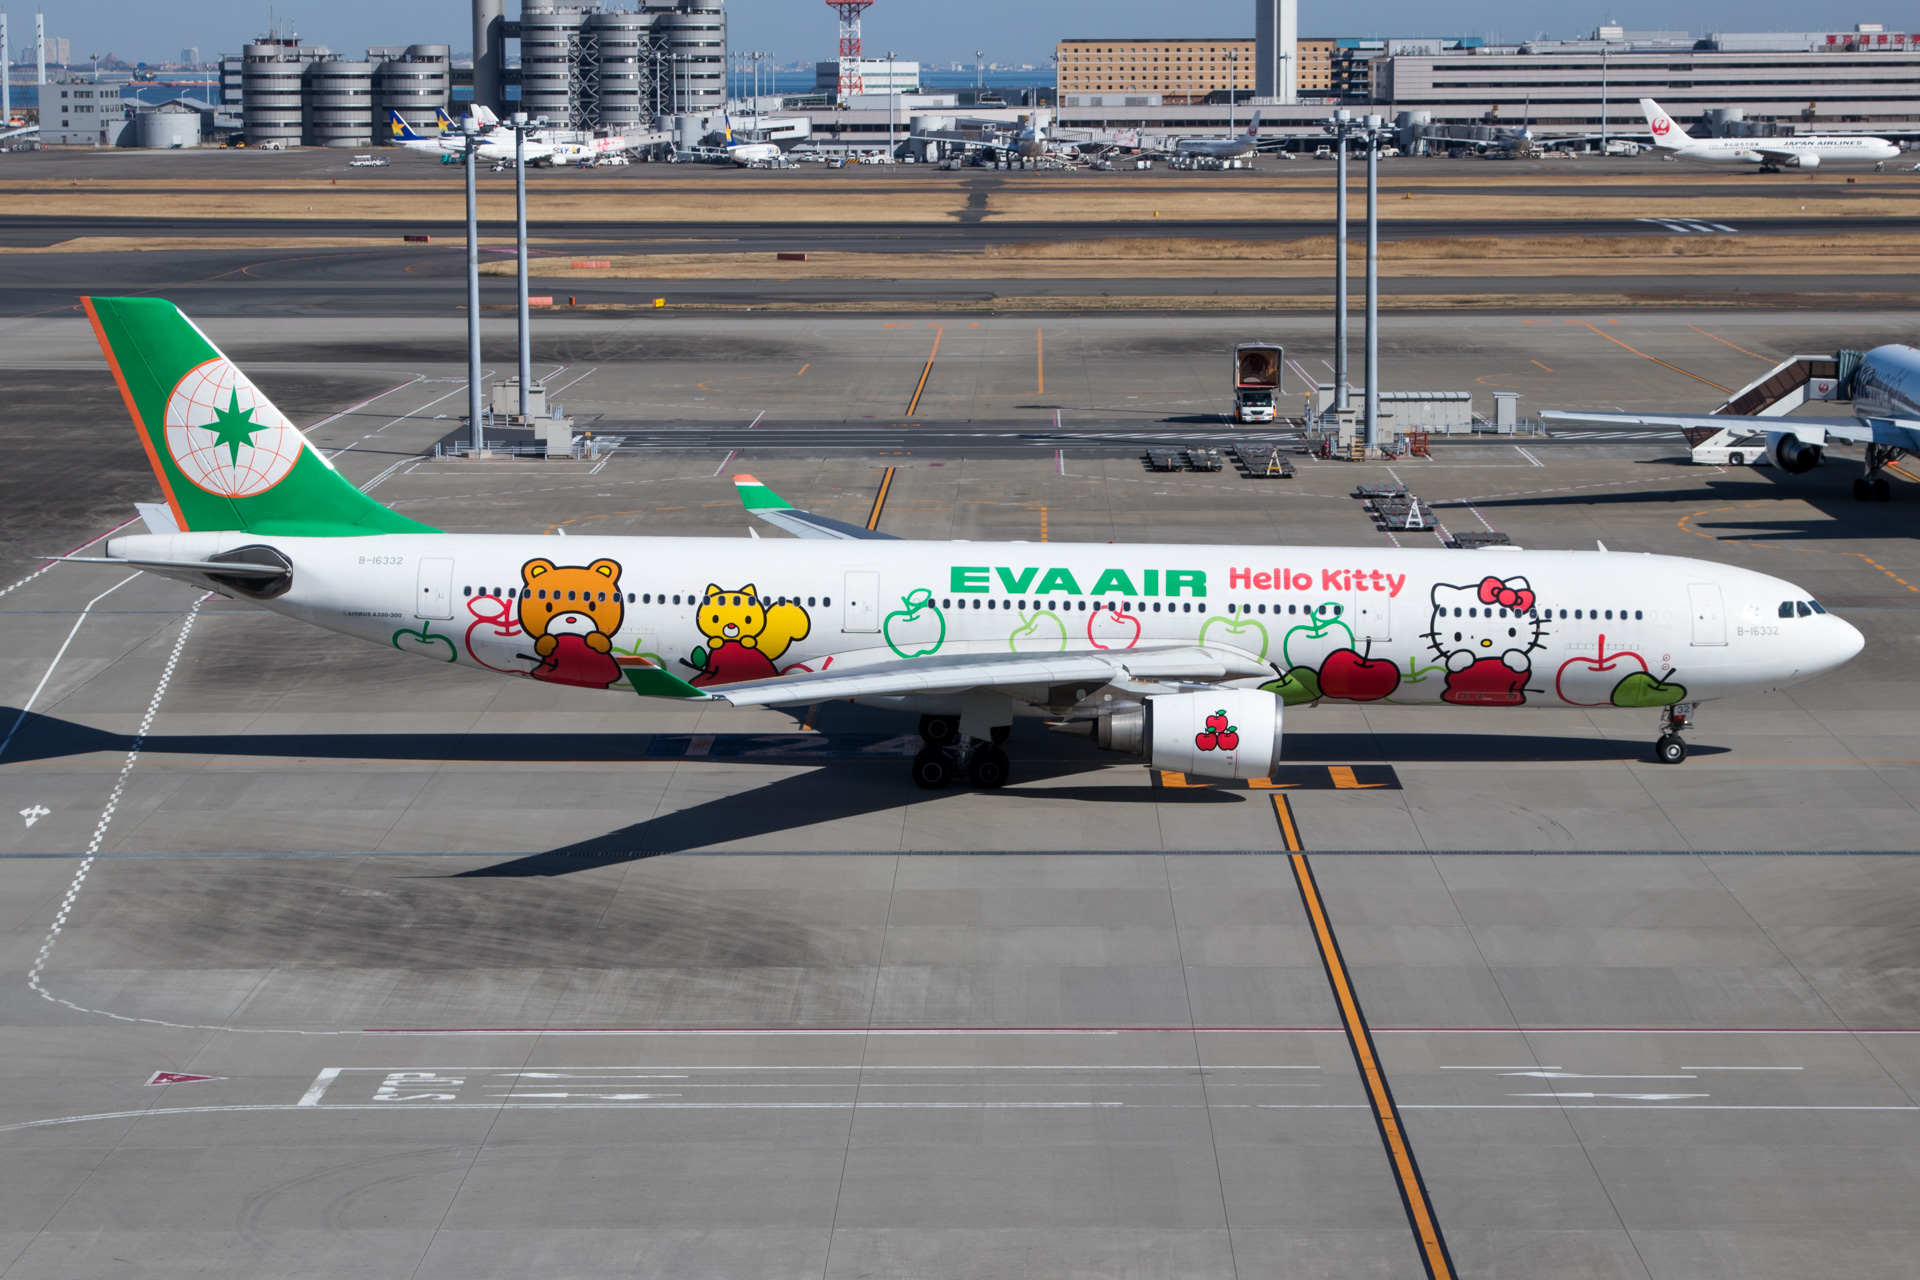 Eva Air Airbus A330-300 Hello Kitty Loves Apples